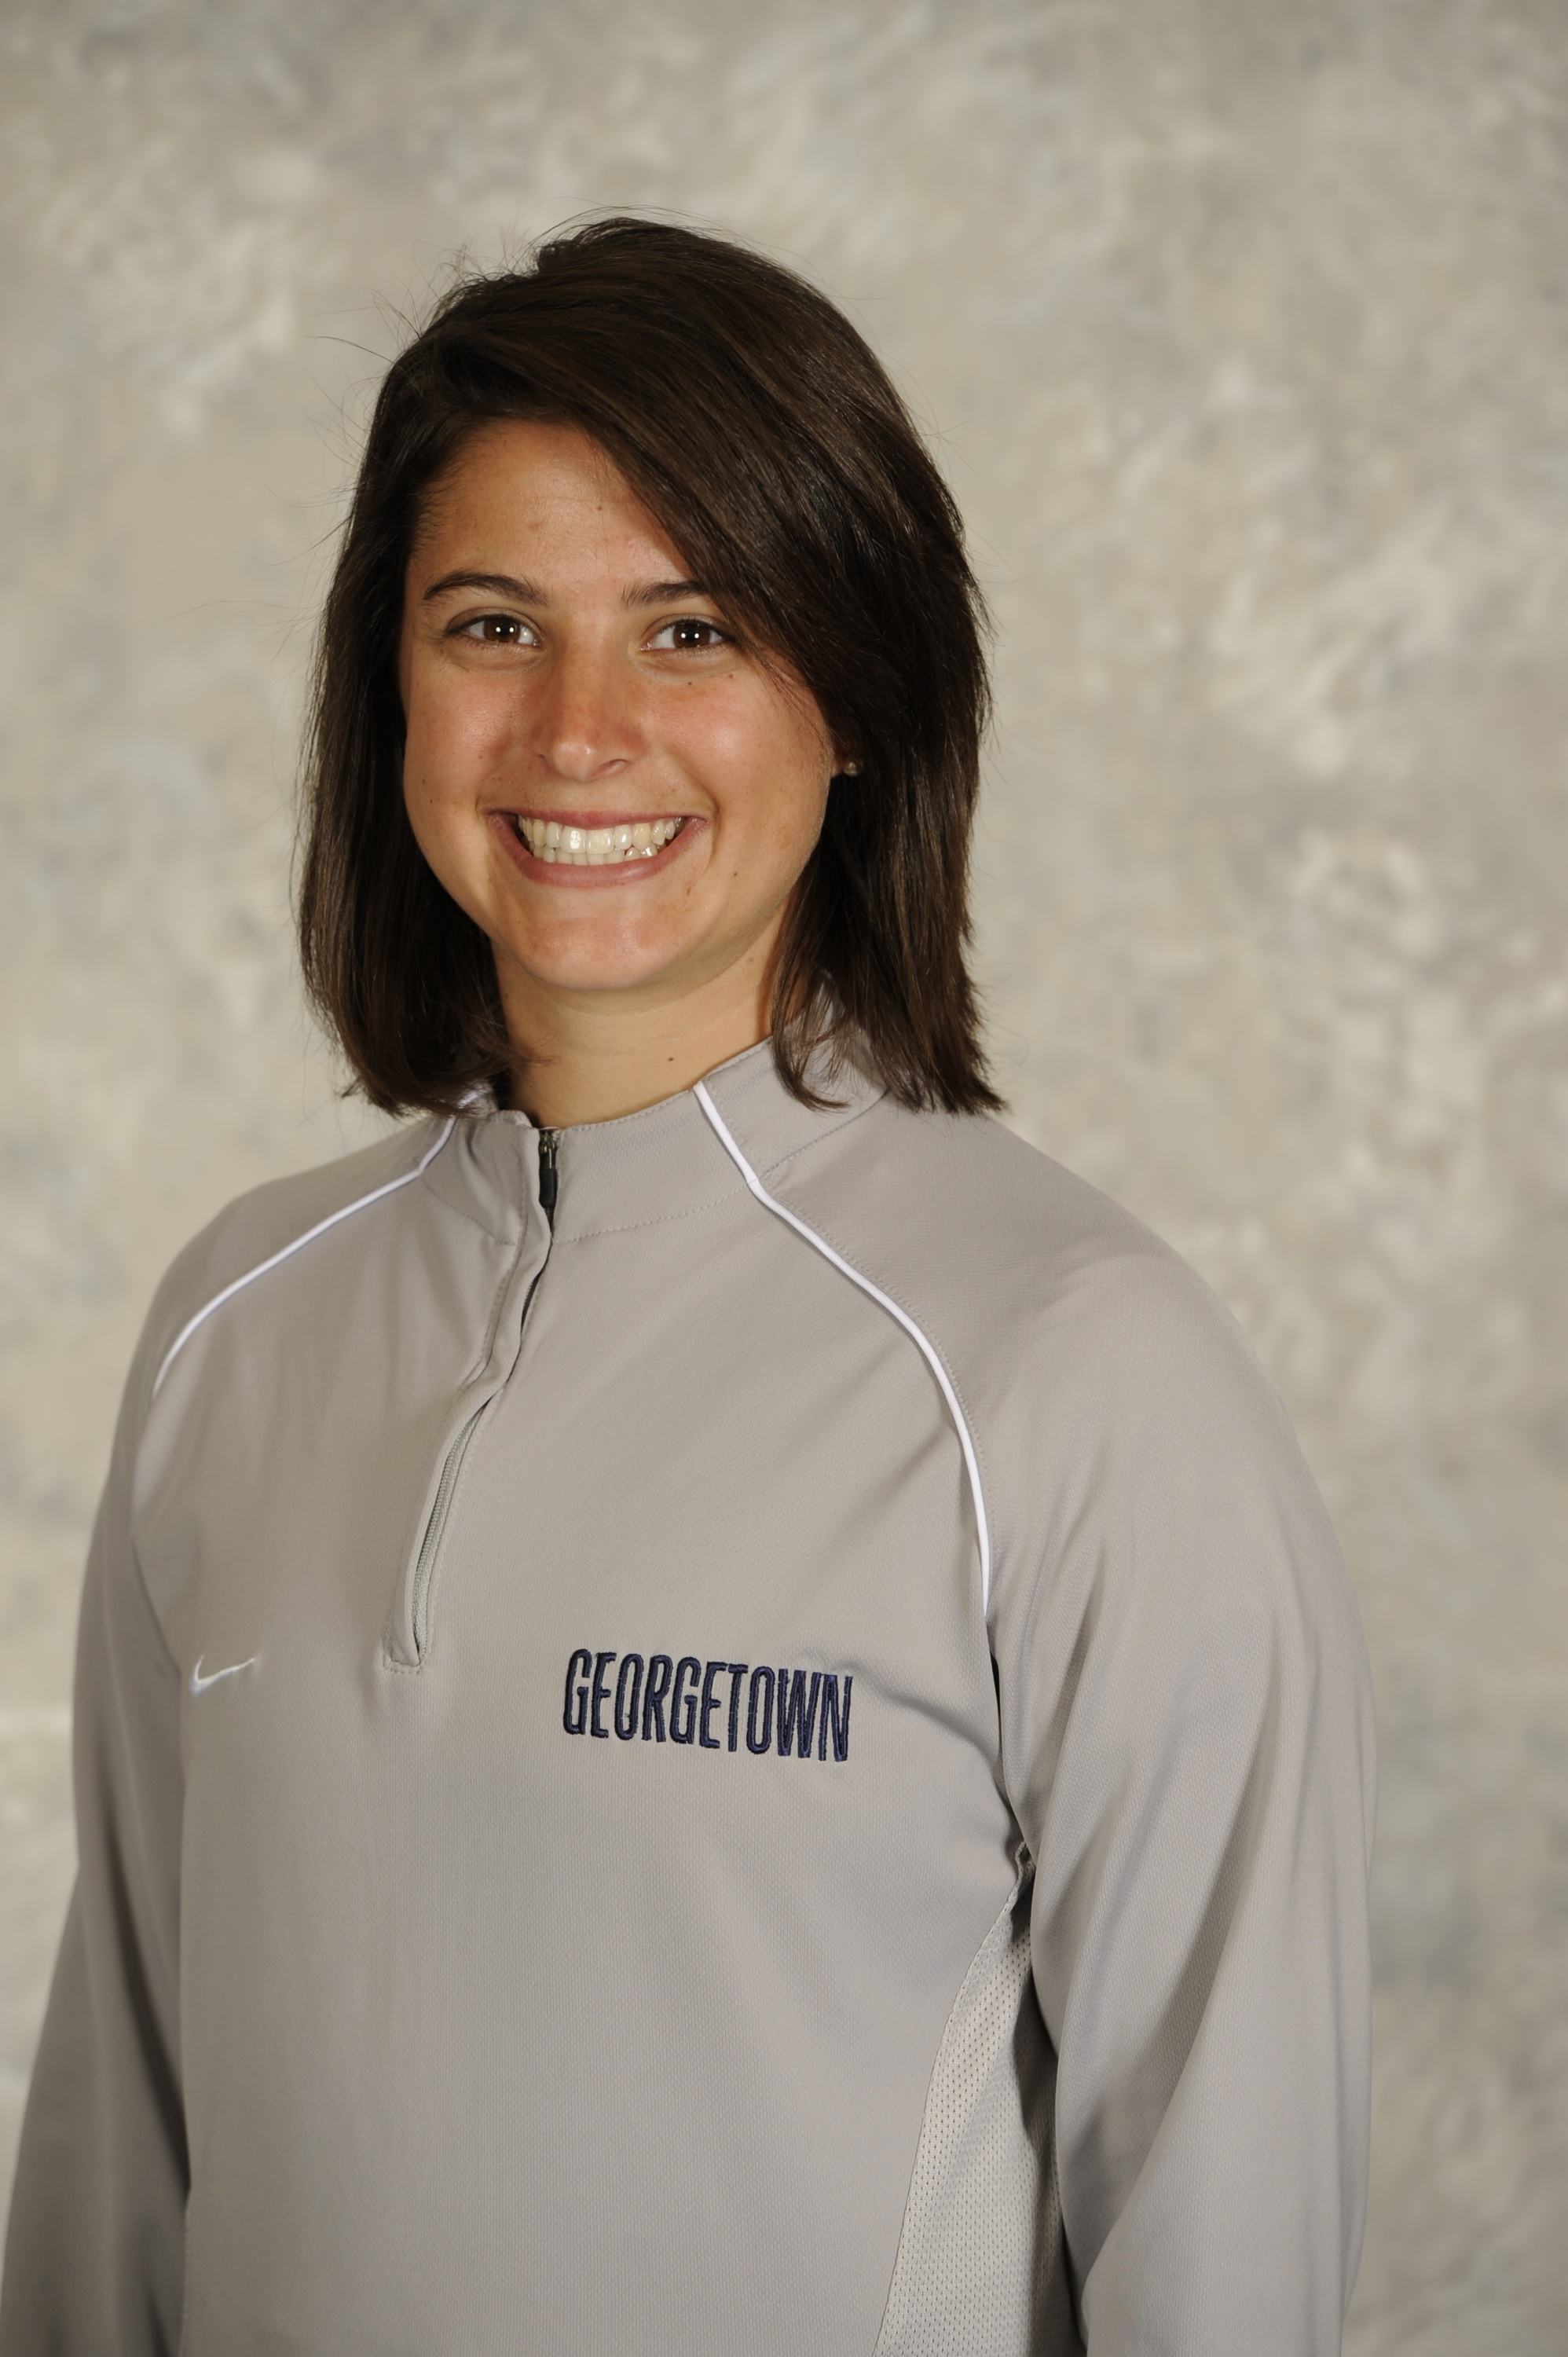 Jordy Kirr will enter her first season as an assistant coach at Marquette in 2013-14. (Photo courtesy of Georgetown Athletics)